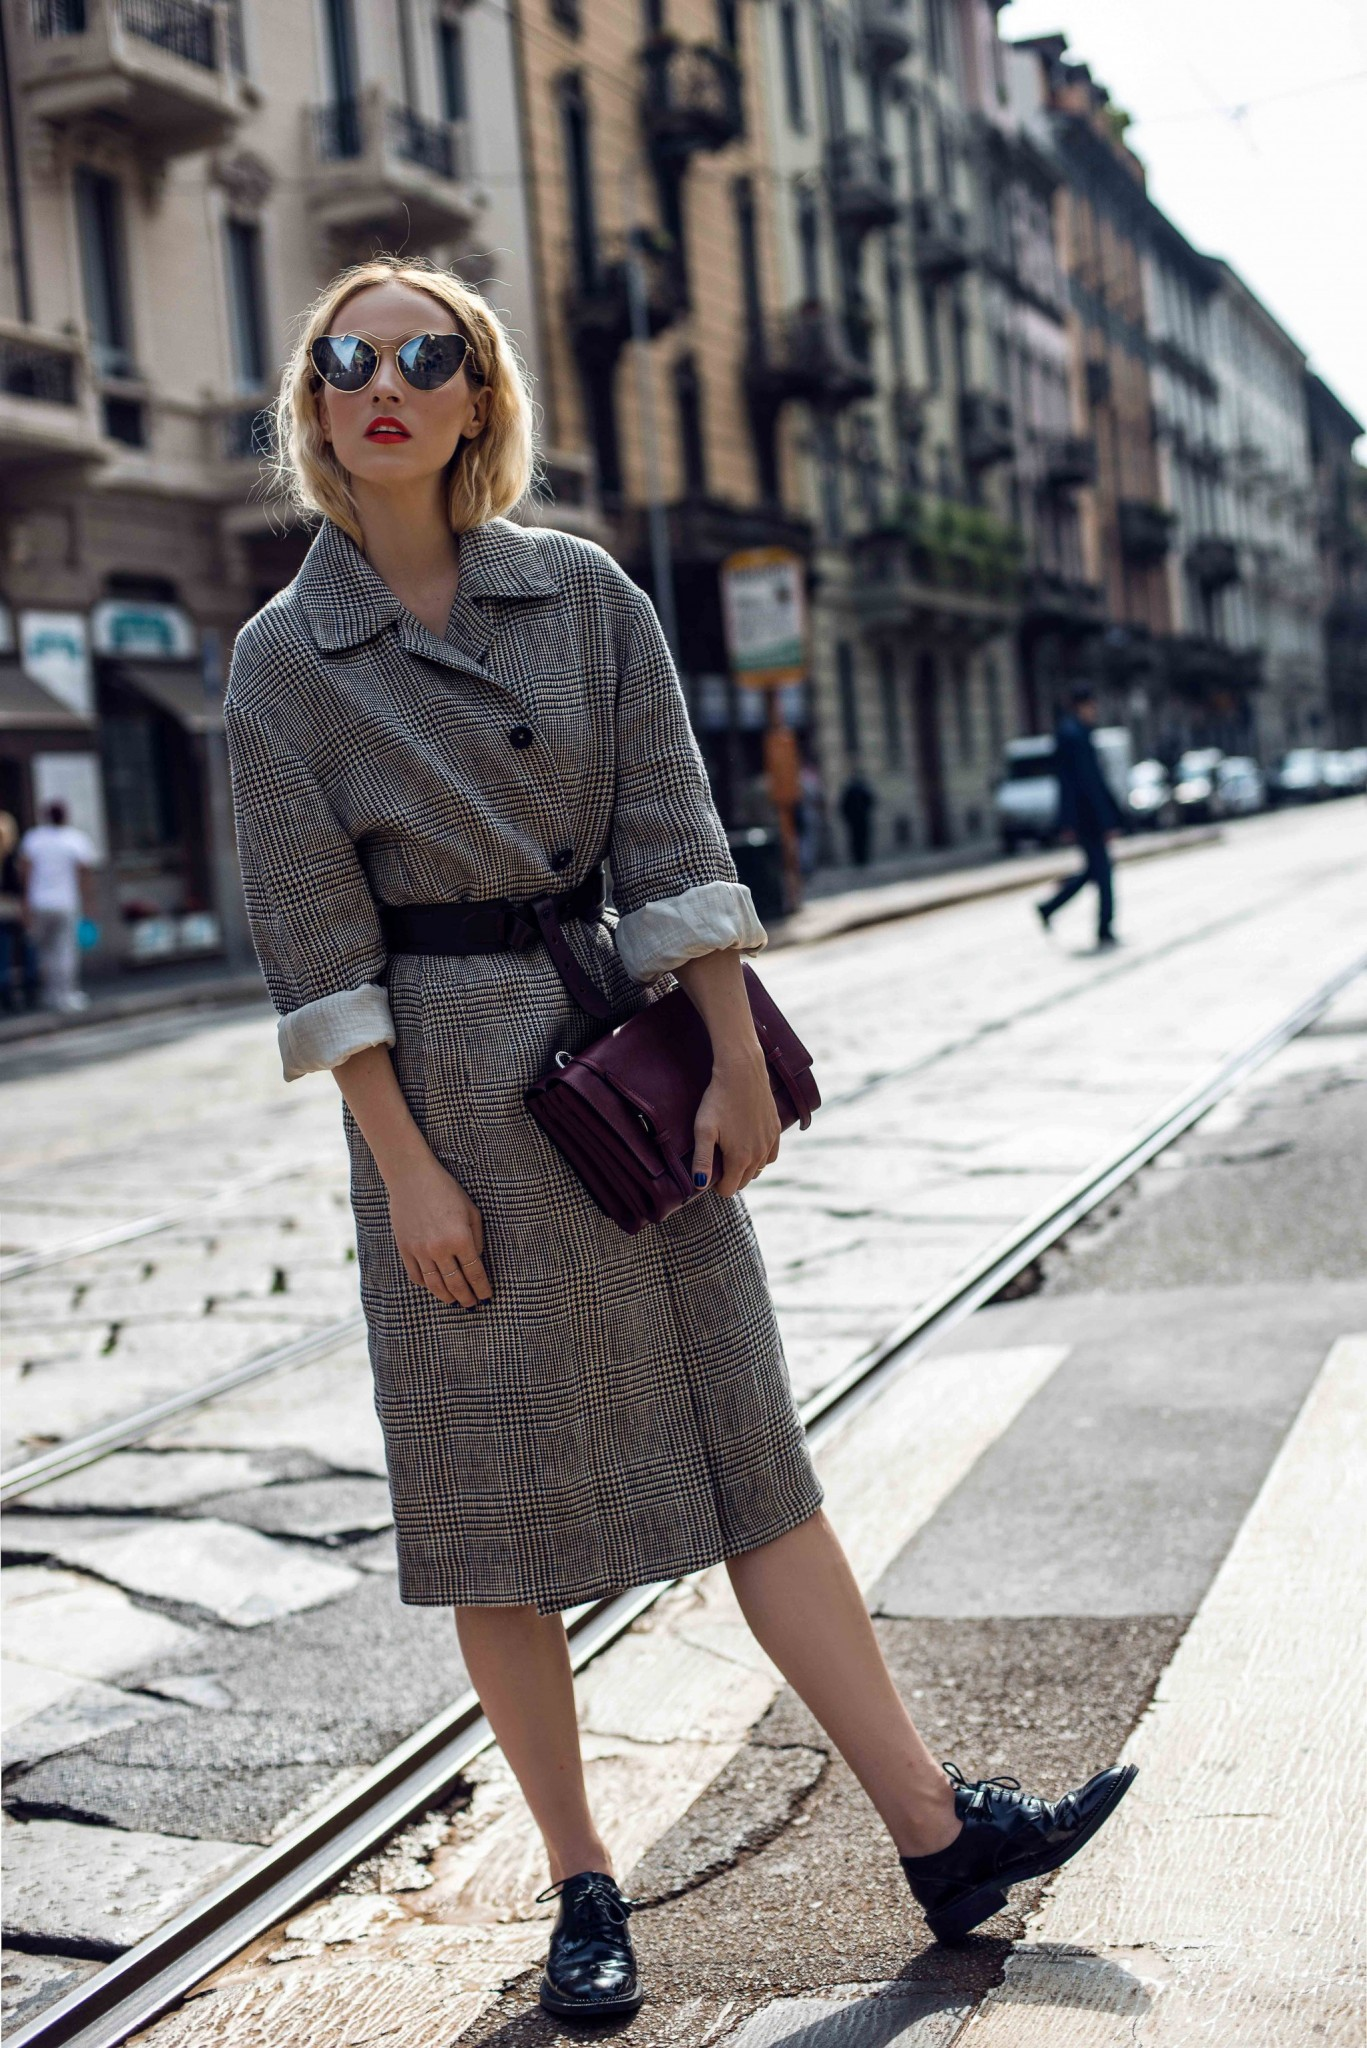 8fabulous_muses_unica_streetstyle_milan_fashion_week